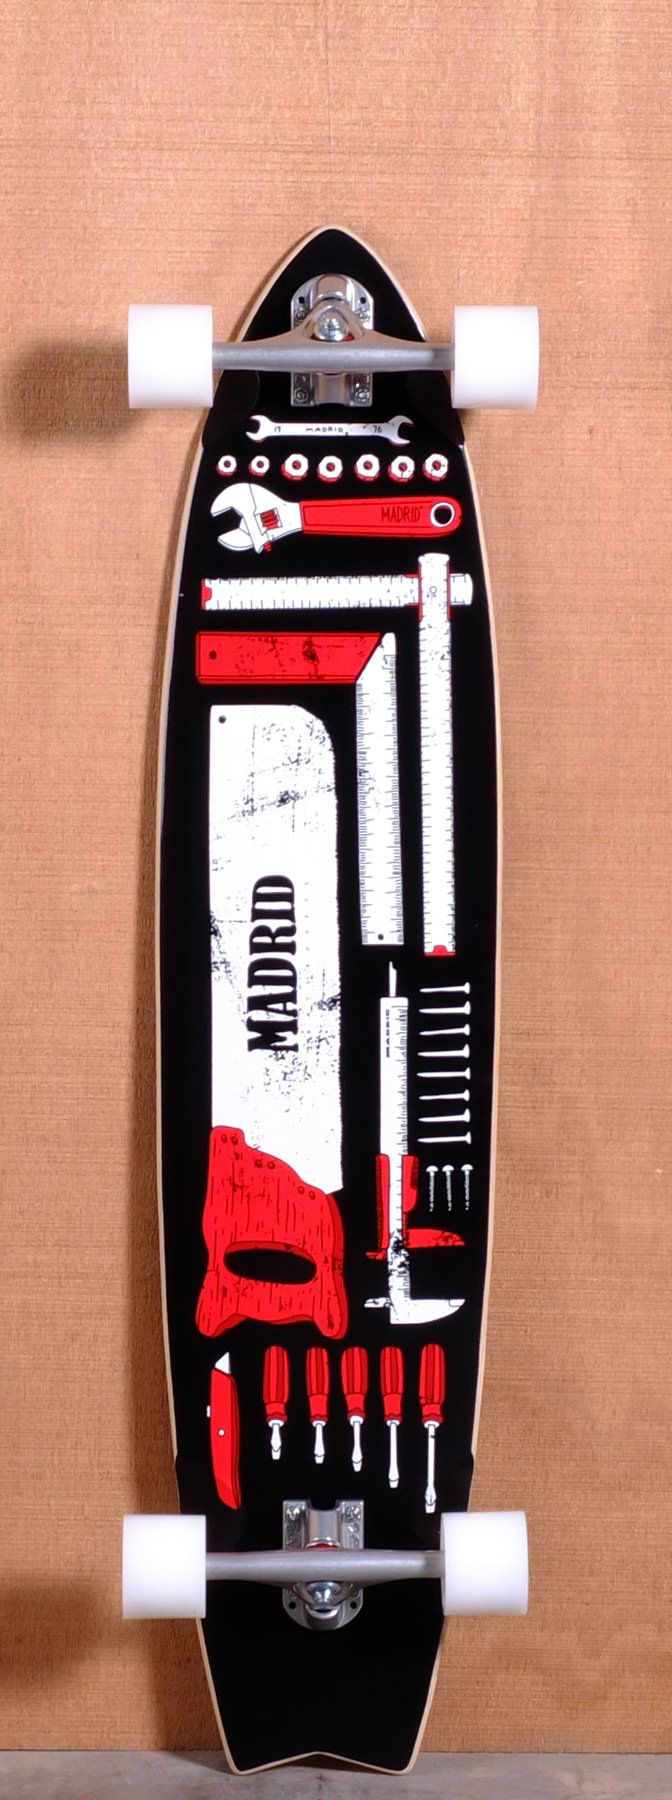 """The Madrid Tools Longboard Complete is designed for Carving and Cruising. Ships fully assembled and ready to skate! Function: Carving, Cruising Features: Concave, Swallow Tail, Wheel Wells Material: 9 Ply Maple Length: 41.625"""" Width: 9.25"""" Wheelbase: 29.75"""" Thickness: 7/16"""" Hole Pattern: New School Grip: Black"""